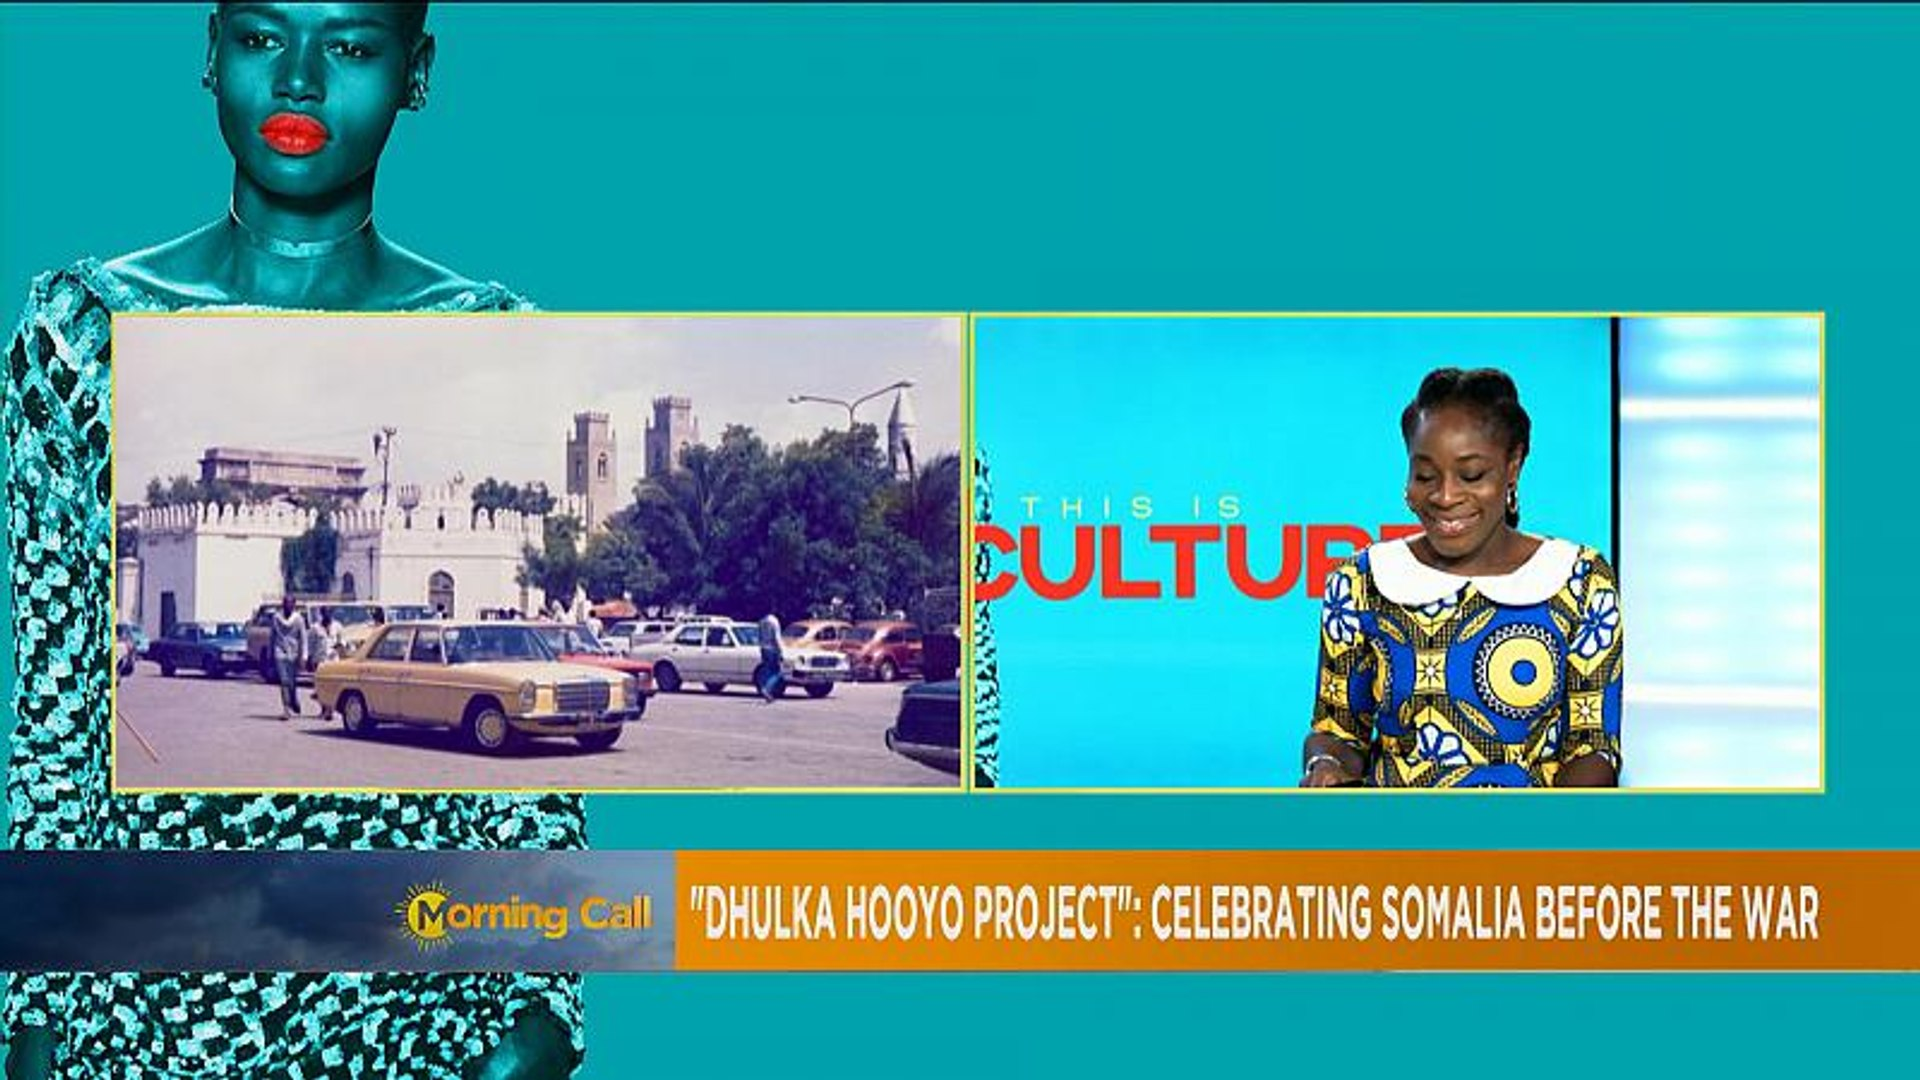 Dhulka Hooyo Project: Celebrating Somalia before the war [This is Culture]